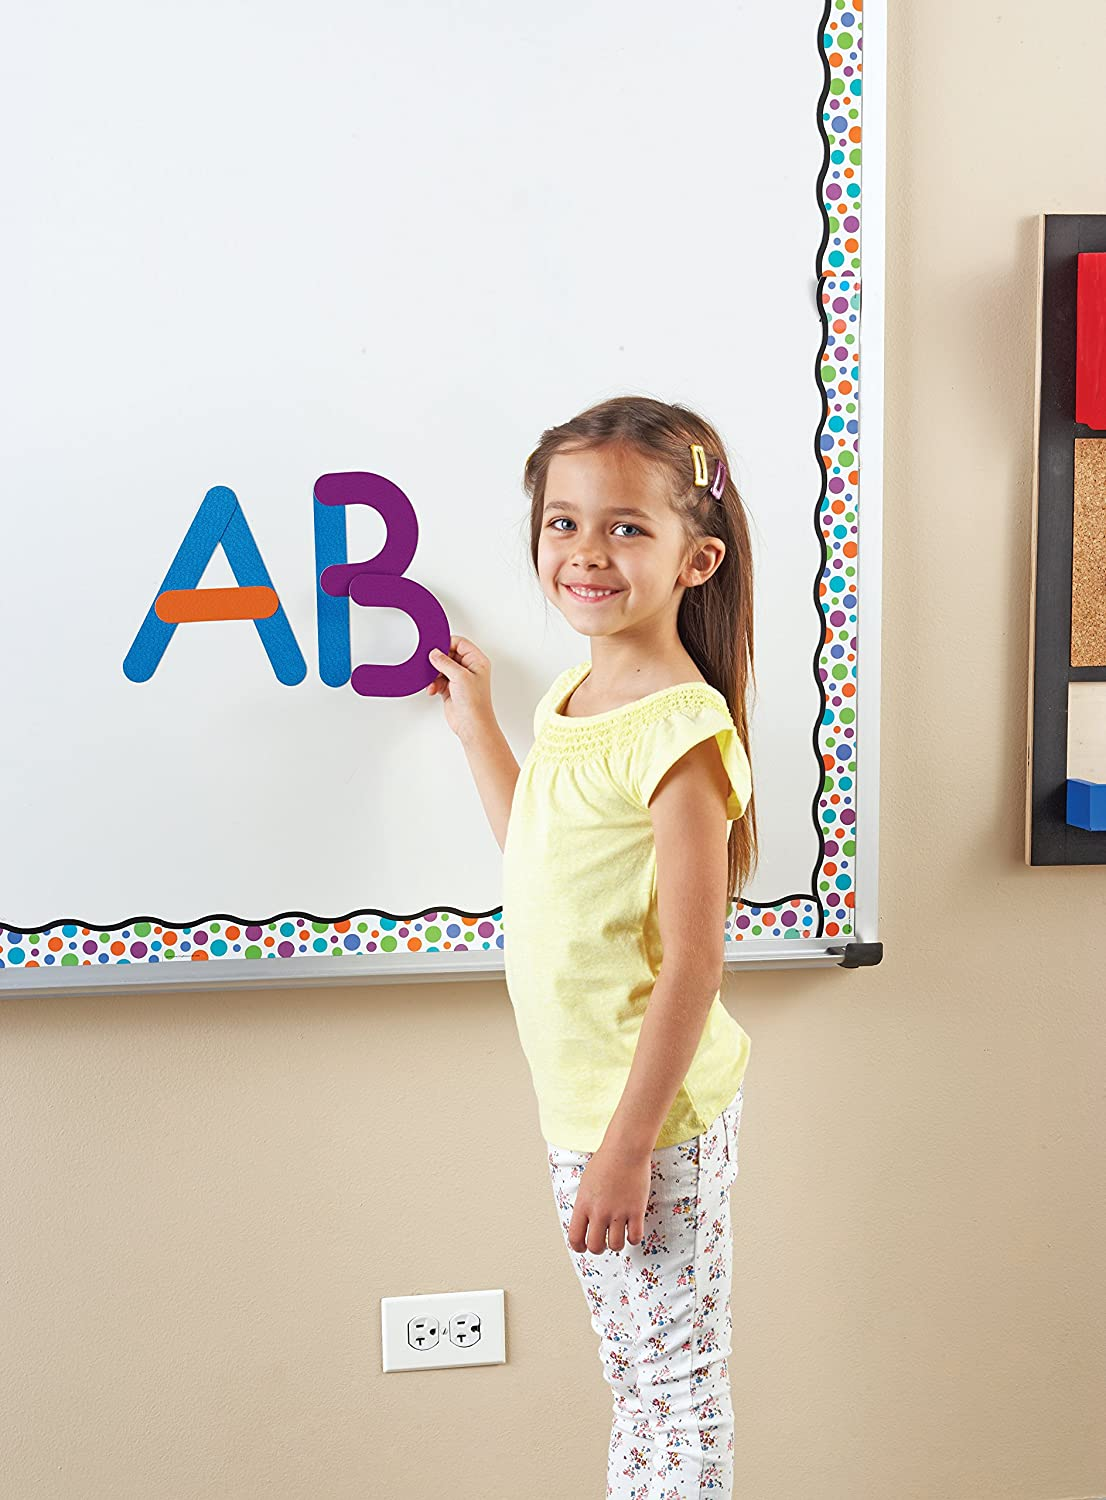 Ages 4+ Giant Magnetic Letter Construction Fine Motor Toy Classroom Accessories 21 Pieces